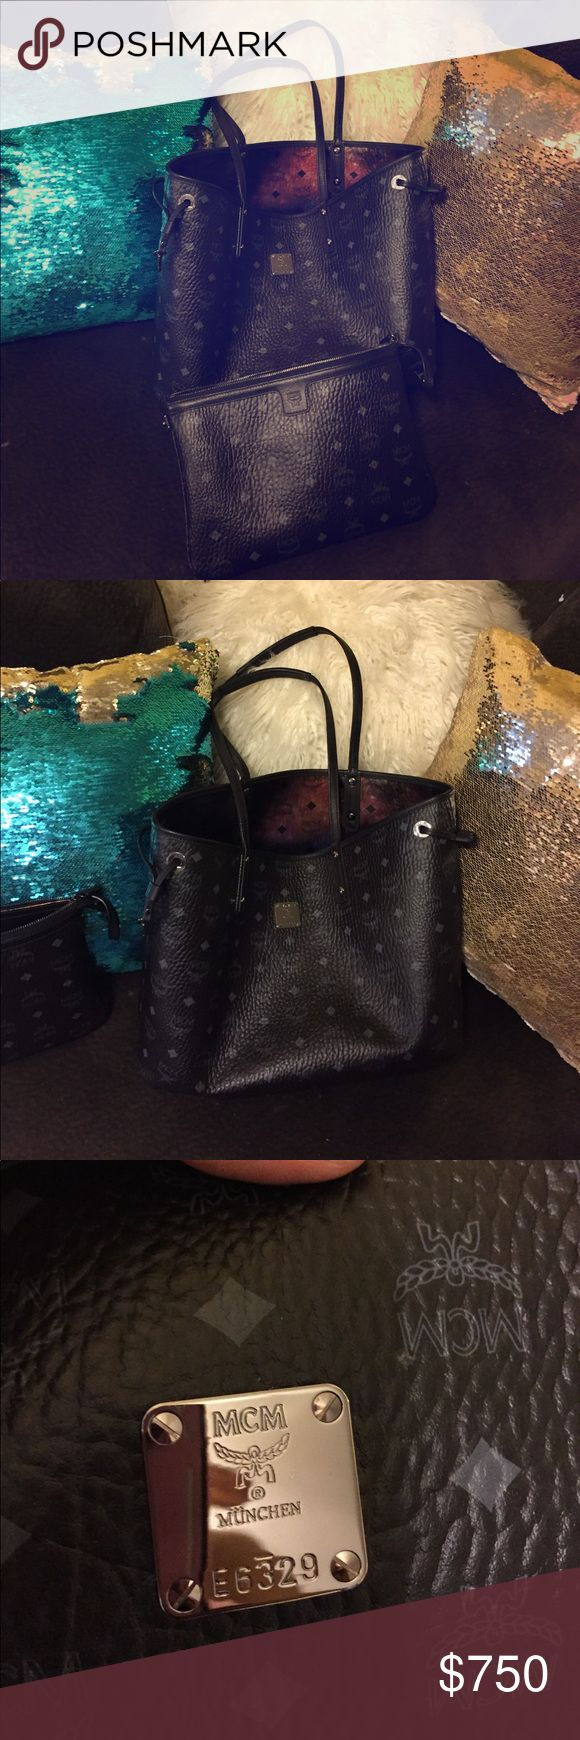 Authentic medium shopper tote&clutch NO TRADES AUTHENTIC MCM REVERSIBLE LIZ SHOPPER TOTE MEDIUM SIZE GALAXY INSIDES COMES WITH BAG CLUTCH PRICE TAG CARE CARD AND WARRANTY CARDS ALSO INCLUDES THE ORIGINAL DUSTBAG PRICE IS FIRM NO TRADES USED TWICE SOLD OUT EVERYWHERE IM NOT ACCEPTING OFFERS POSHMARK TAKES 20% KEEP THAT IN MIND THANKS MCM Bags Totes